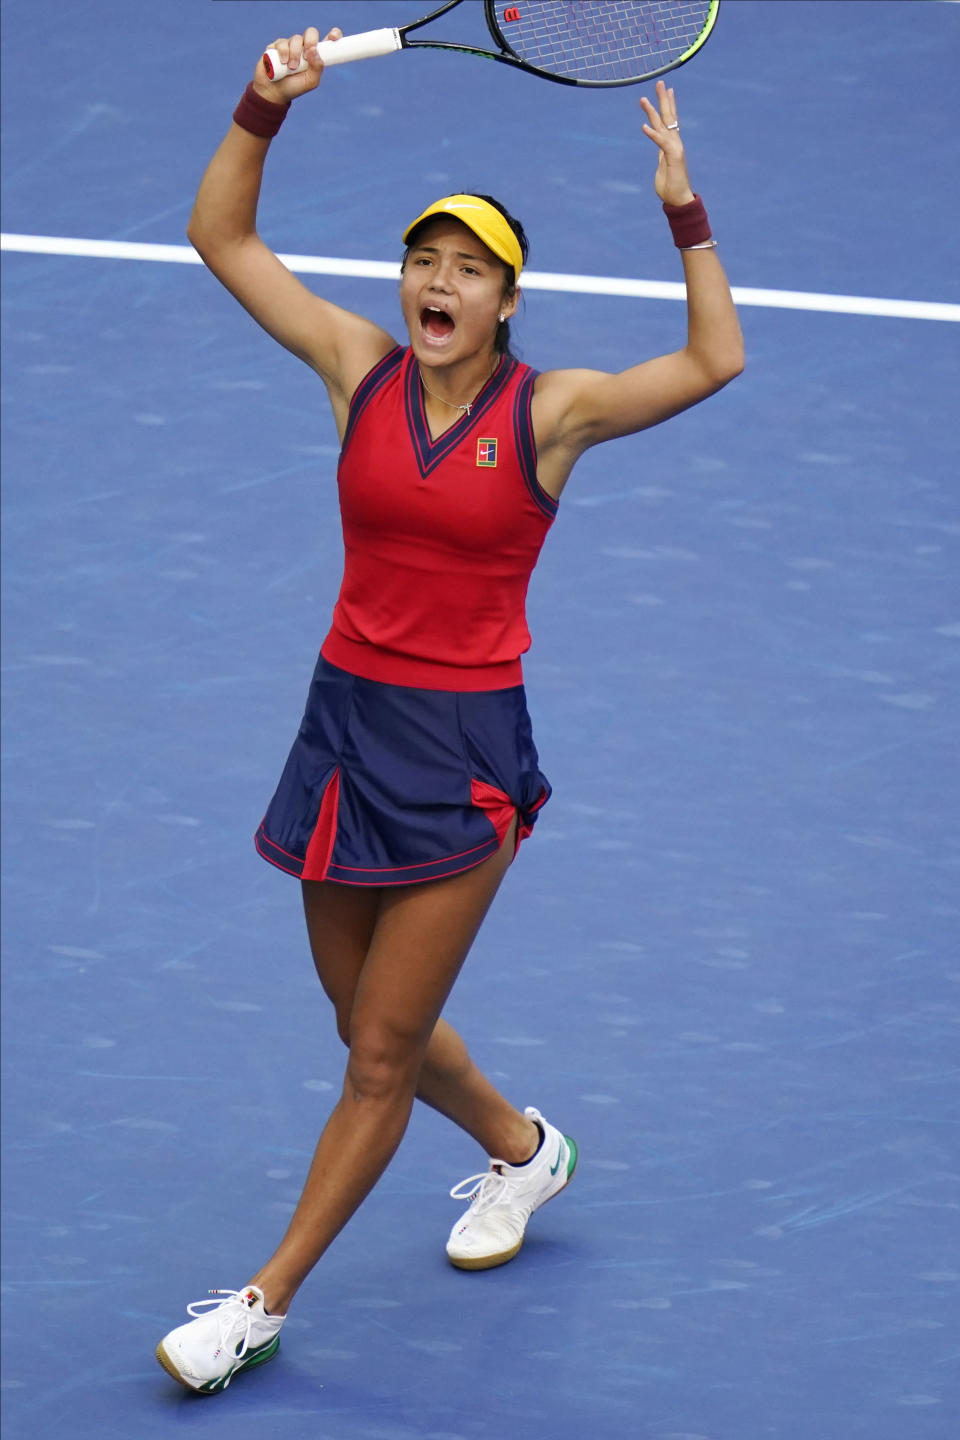 Emma Raducanu, of Britain, reacts after winning the first set against Leylah Fernandez, of Canada, during the women's singles final of the US Open tennis championships, Saturday, Sept. 11, 2021, in New York. (AP Photo/Frank Franklin II)